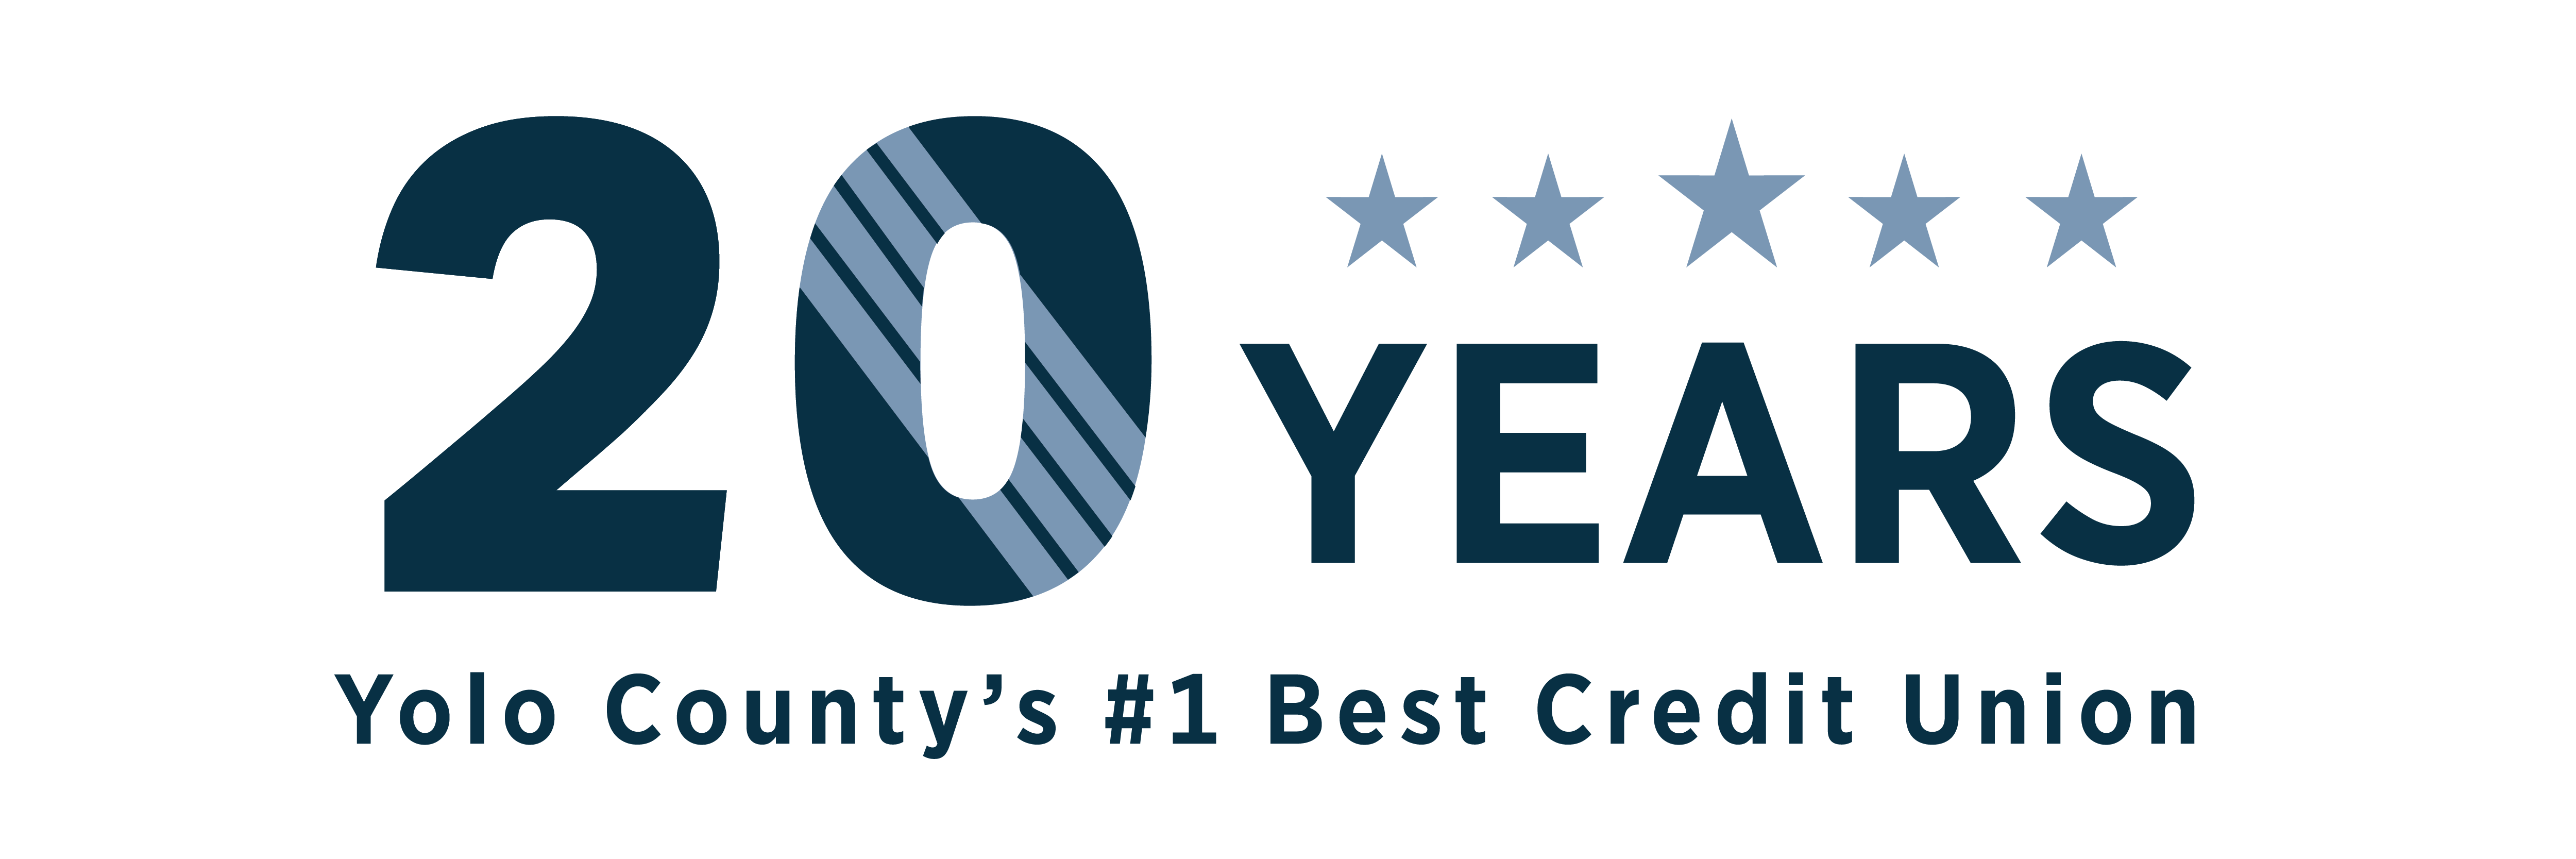 Yolo County's #1 Best Credit Union for 20 years